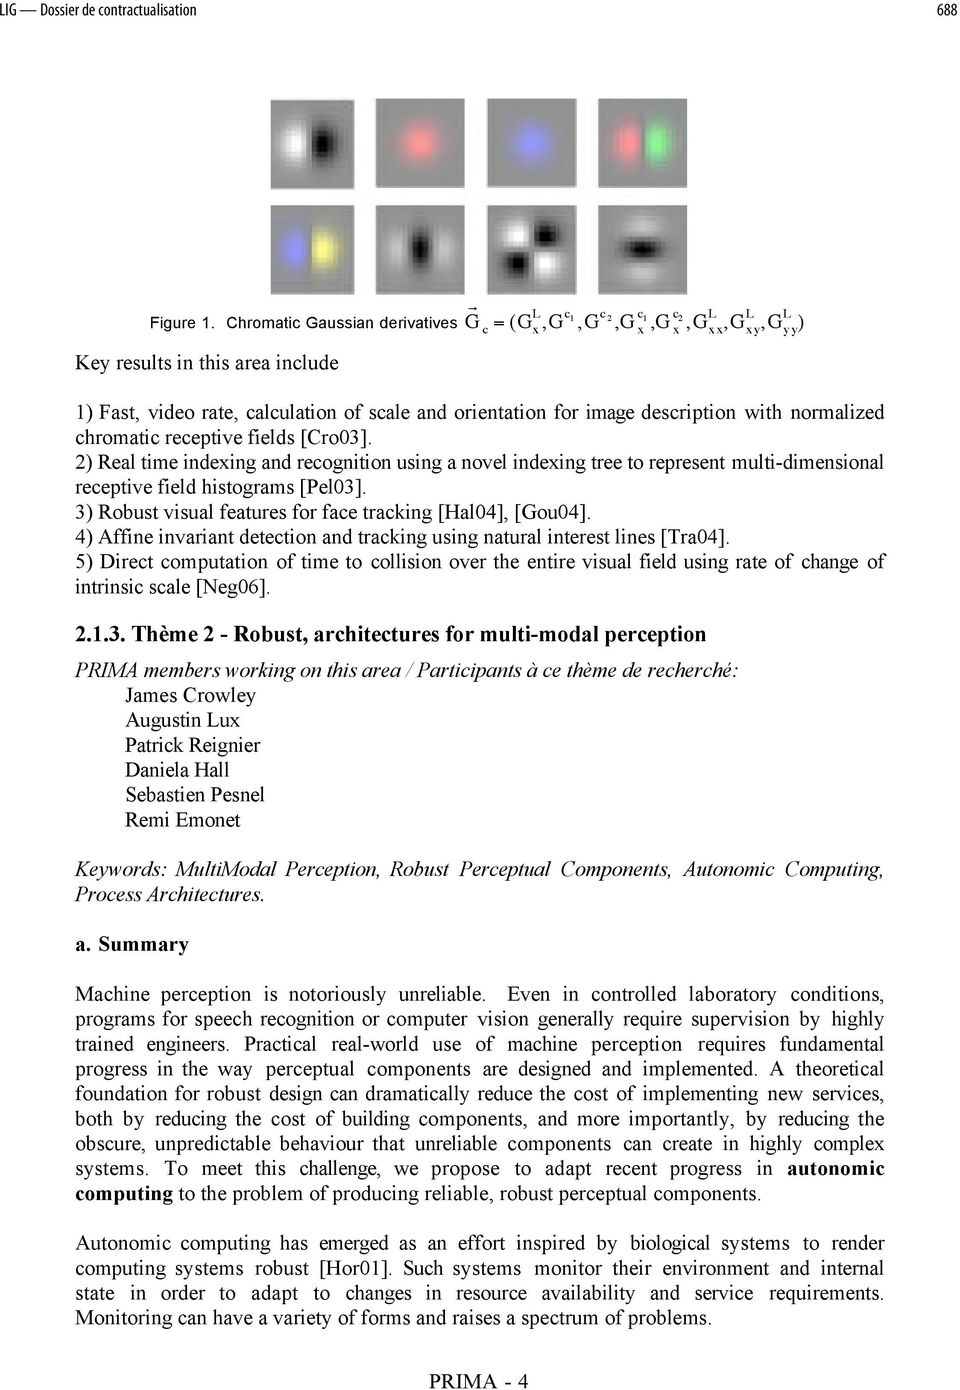 description with normalized chromatic receptive fields [Cro03]. 2) Real time indexing and recognition using a novel indexing tree to represent multi-dimensional receptive field histograms [Pel03].